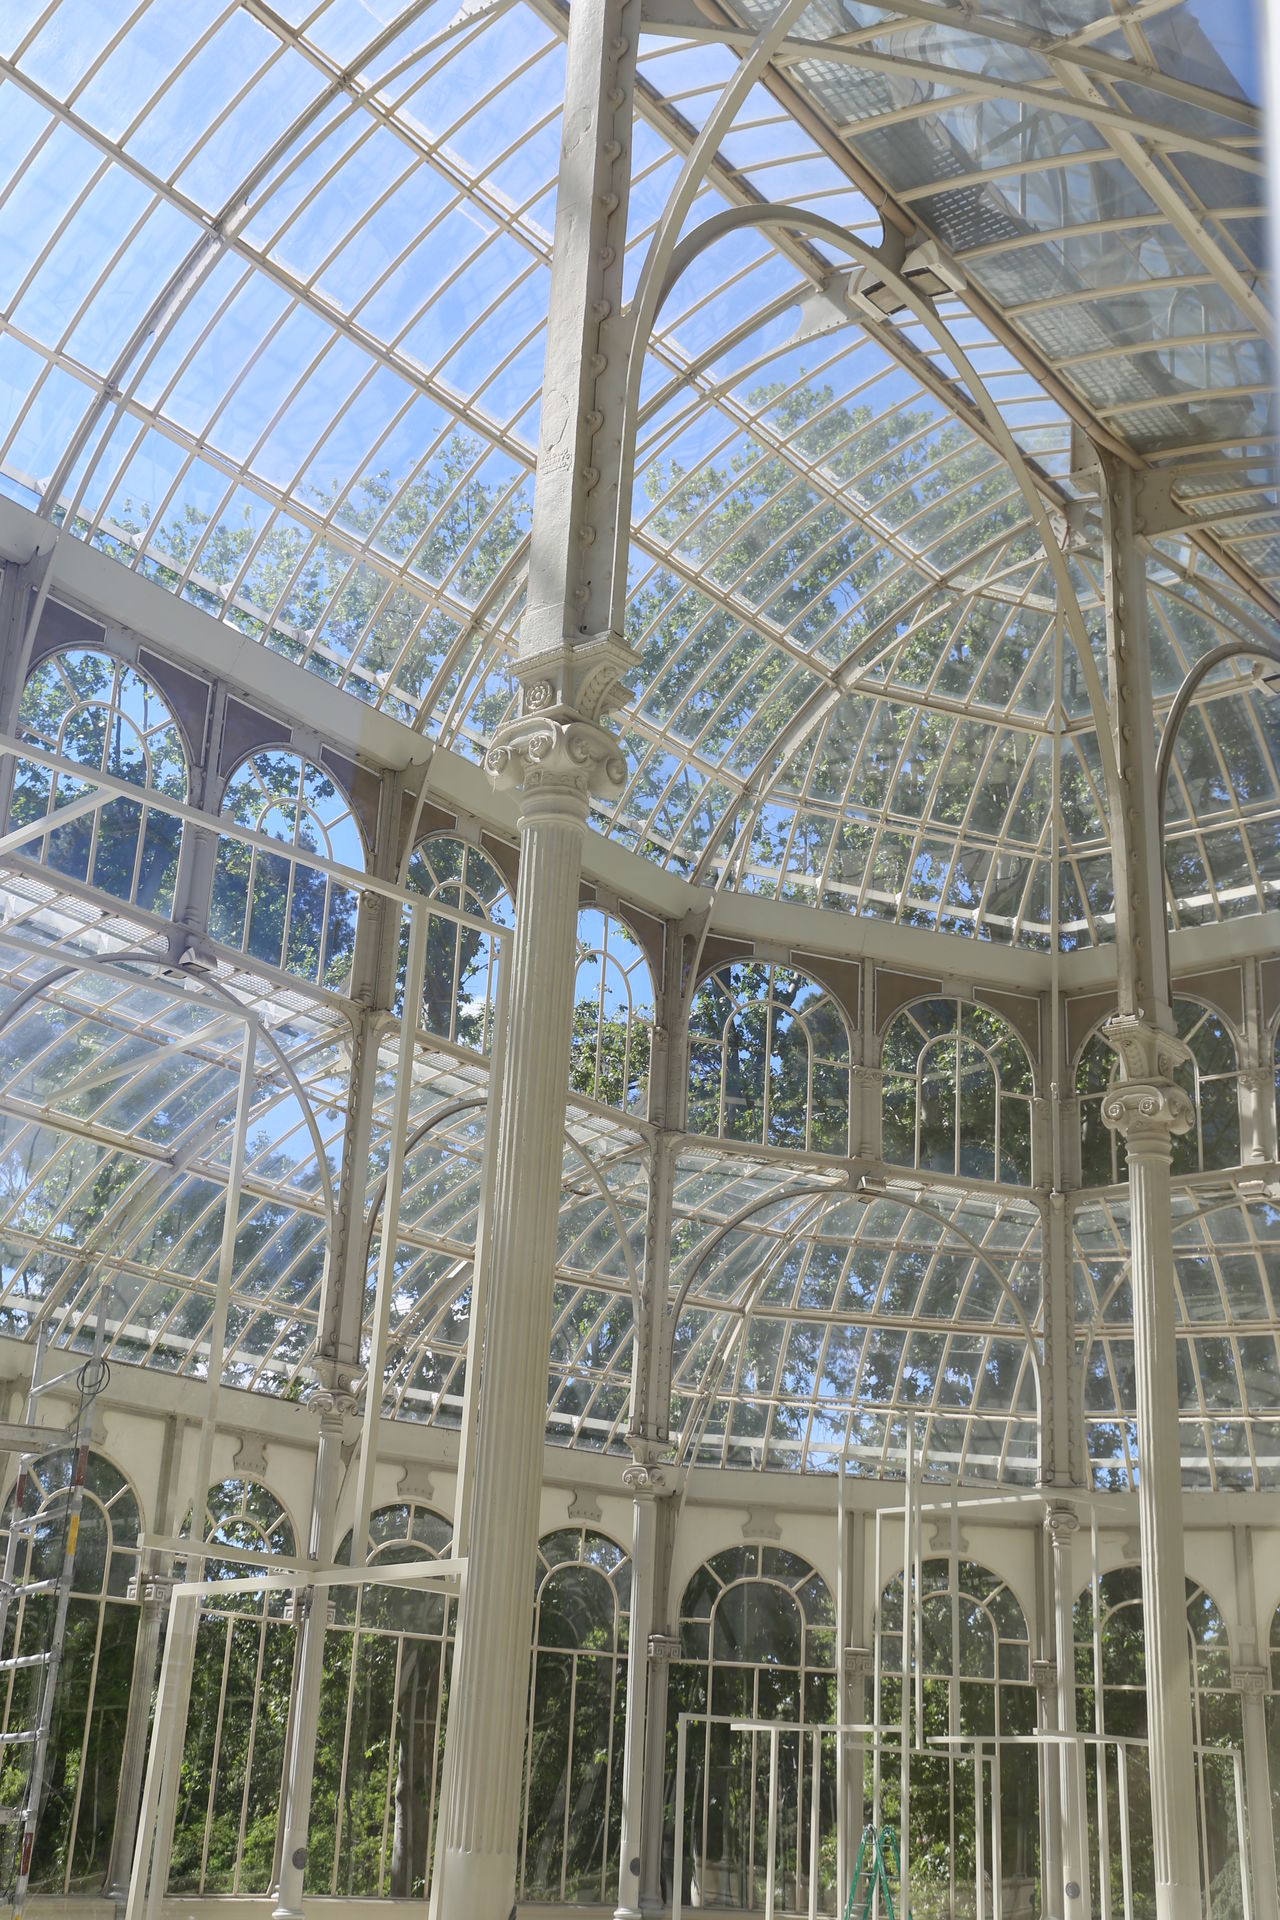 Architectural Design Architectural Feature Architecture Built Structure Crystal Palace Glass Glasshouse Indoors  Madrid Palacio De Cristal SPAIN First Eyeem Photo